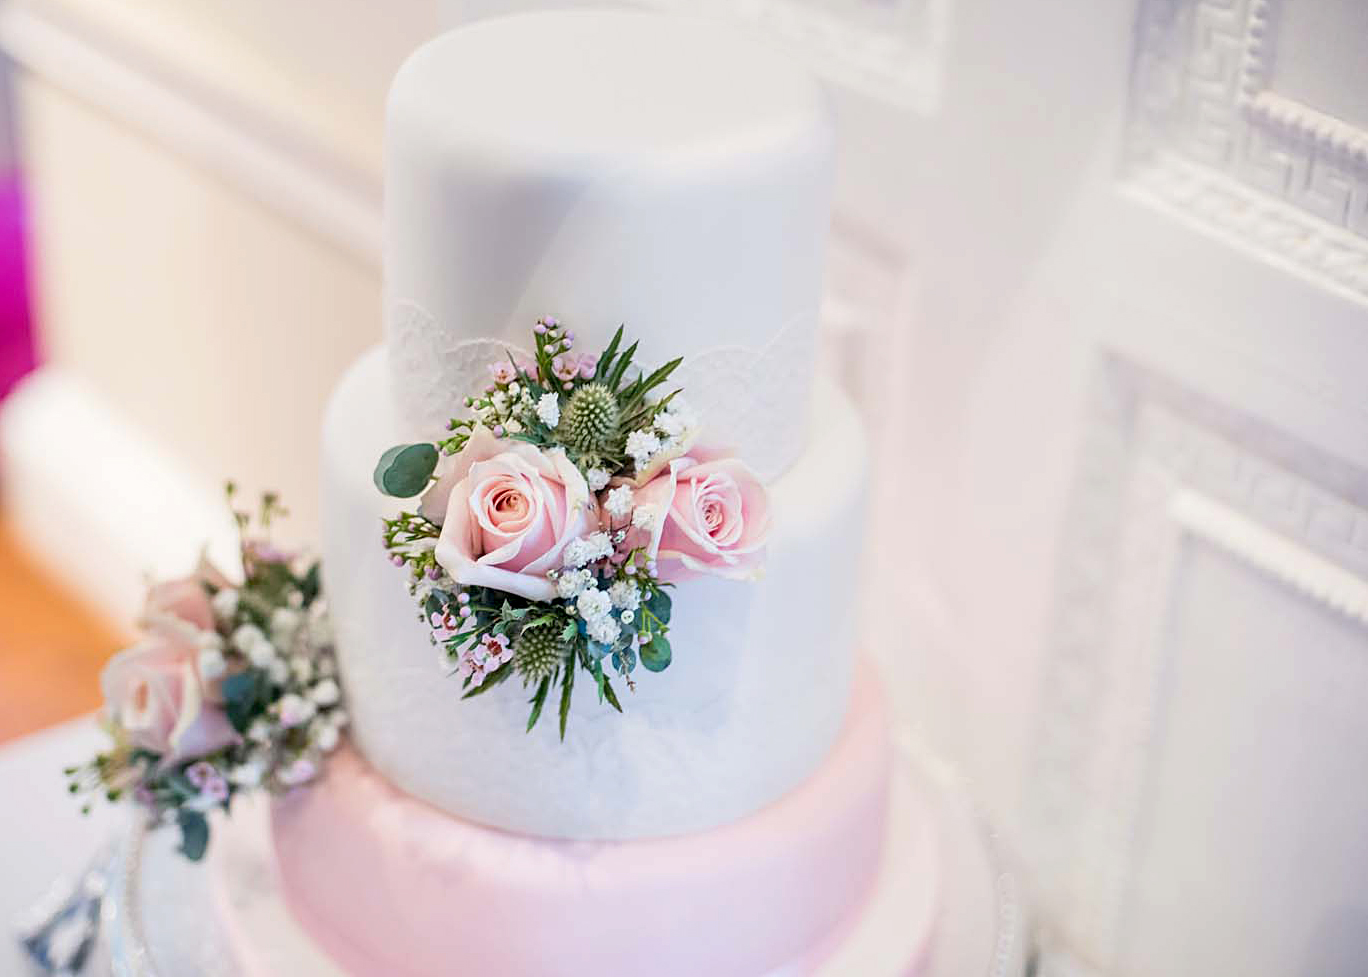 Sharon and Jamie's Wedding cake, image by Thom Walker